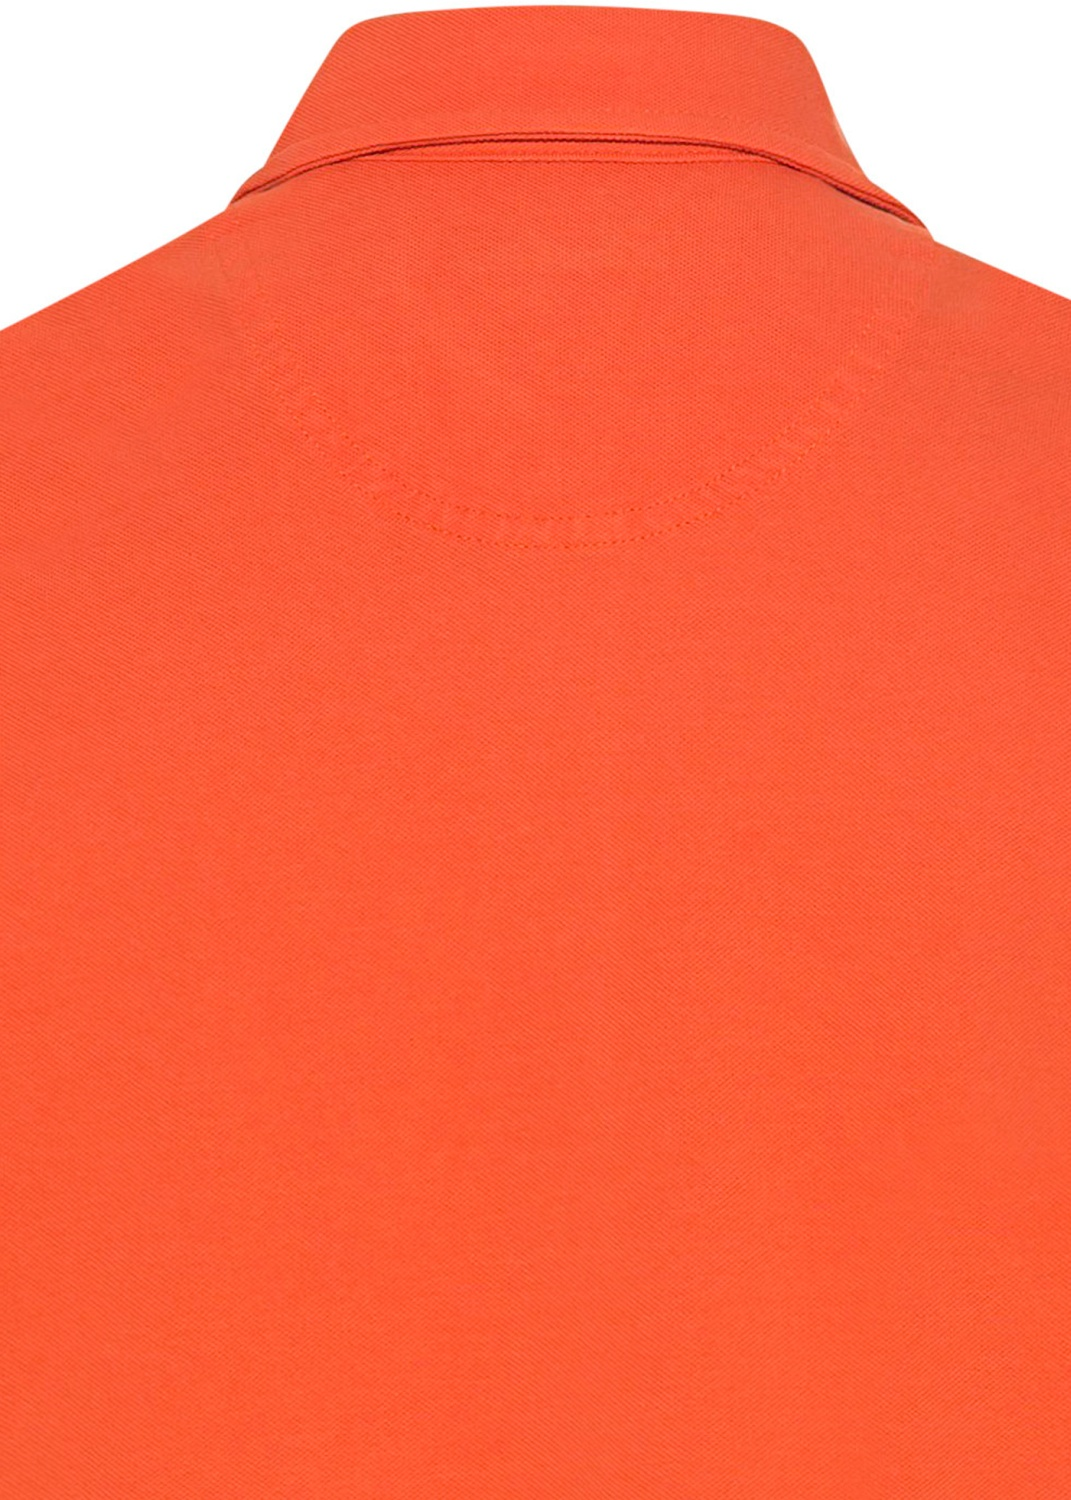 Polo shirt, contrast image number 3